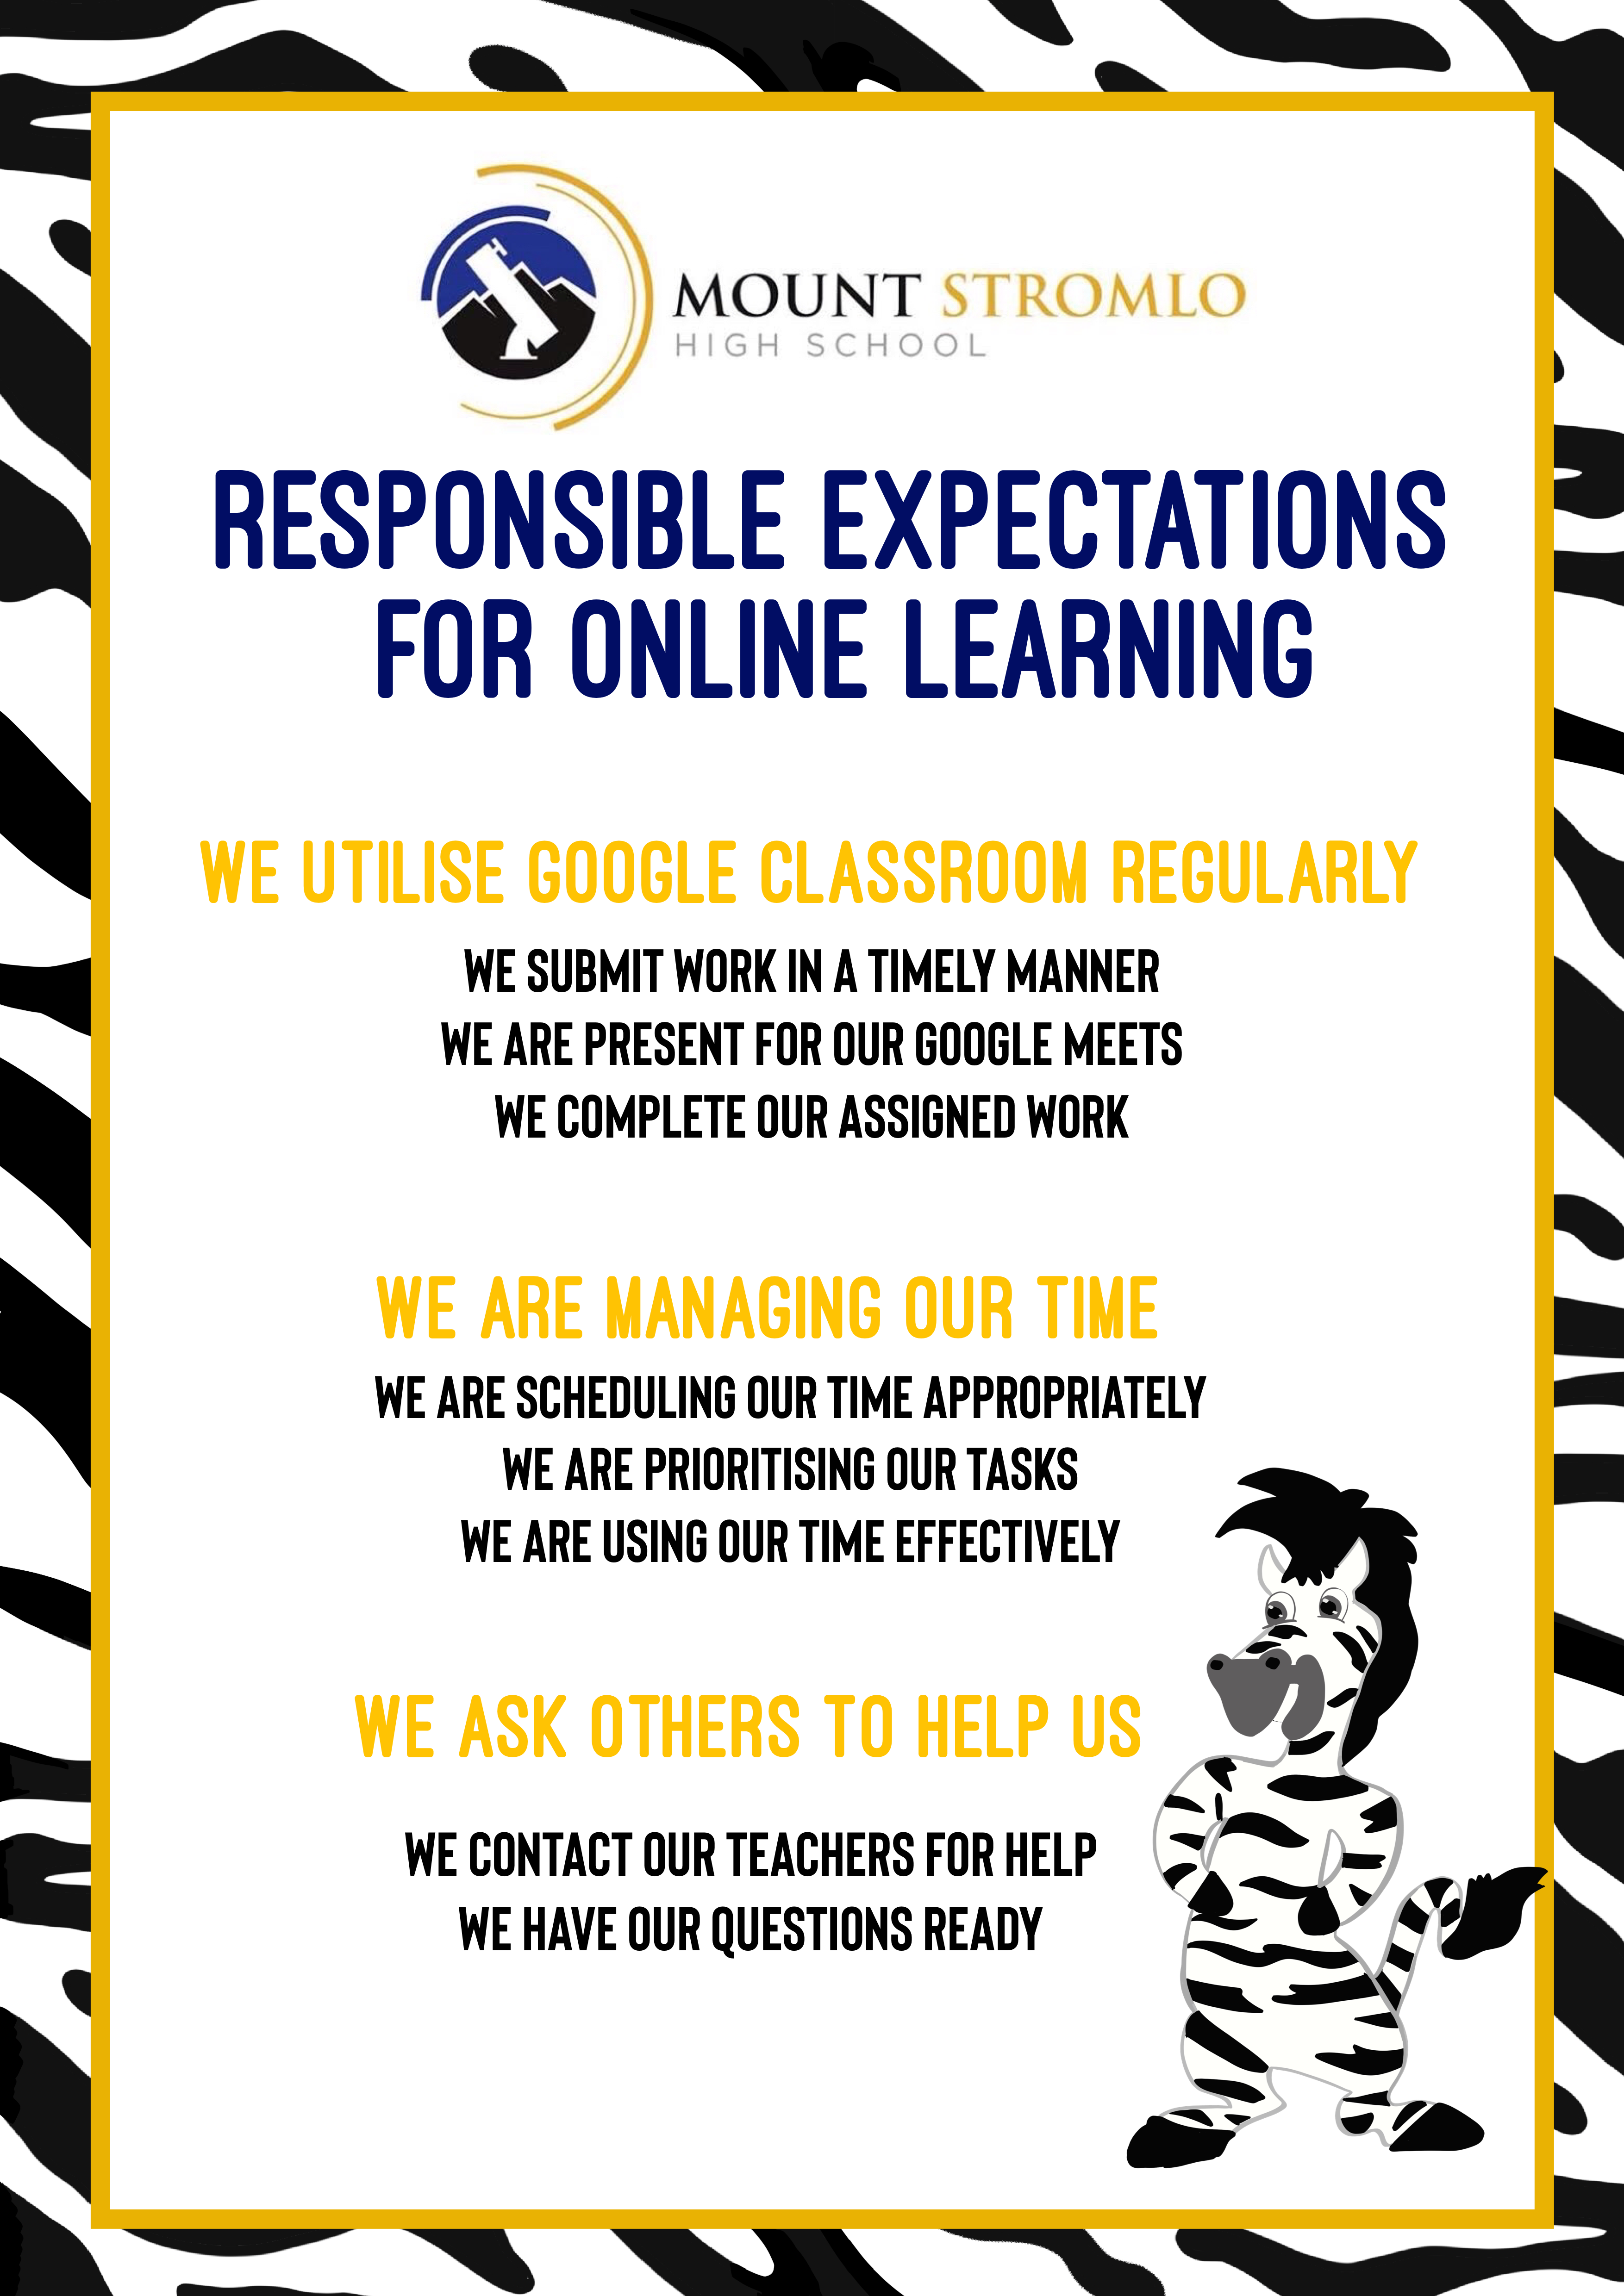 Responsible expectations for online learning: We utilise Google Classroom regularly, We are managing our time, We ask others to help us